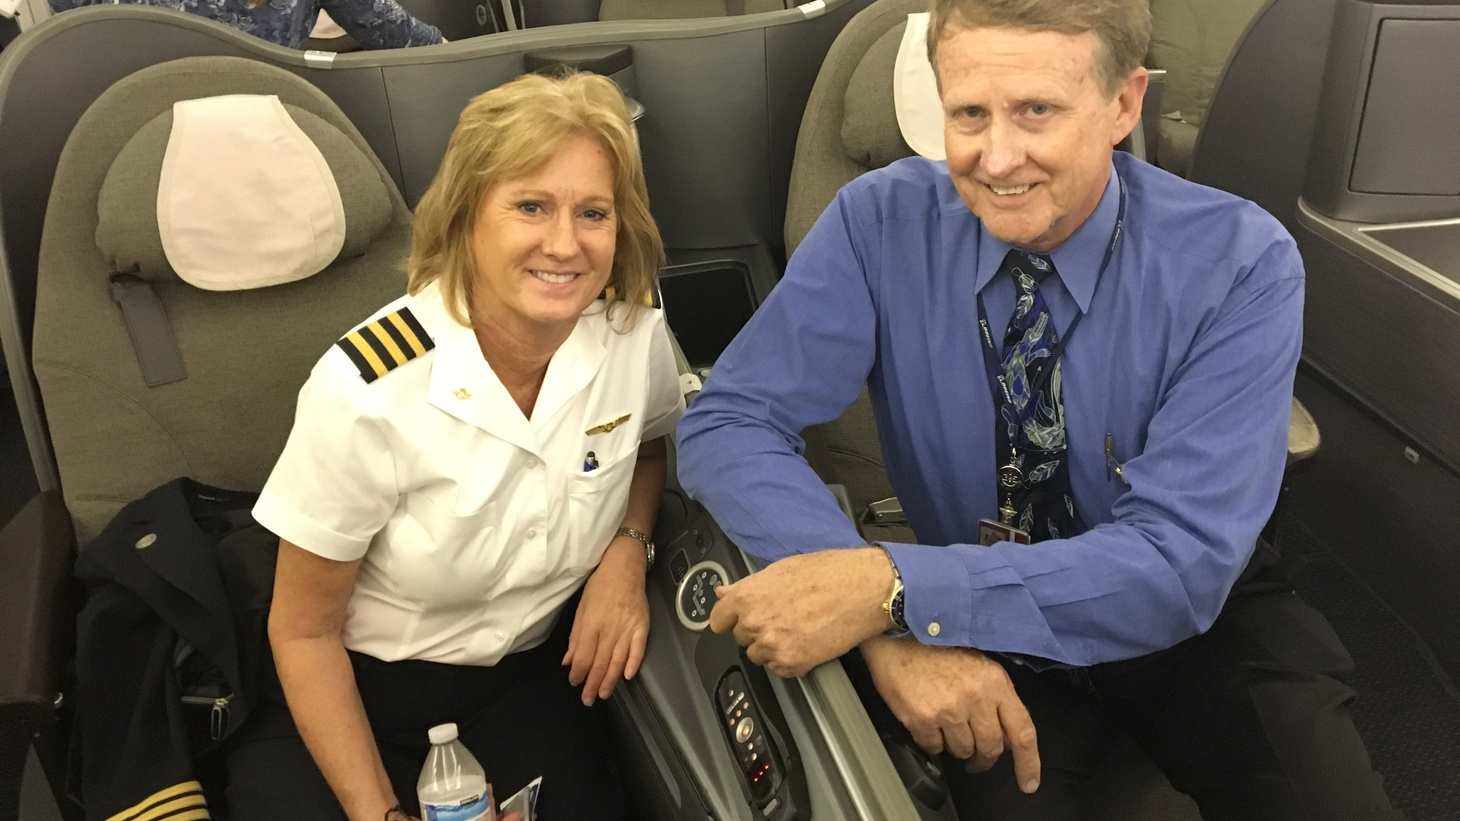 """Kathleen Hesse and Perry Cockreham with United Airlines on board a Boeing 747 Photo by Avishay Artsy   The """"Queen of the Skies"""" - the Boeing 747 - makes its final flight today for United Airlines.   DnA talks to wistful 747 pilots about what made the plane so special. One pilot says that even though it was a large airplane it """"handled like a…"""